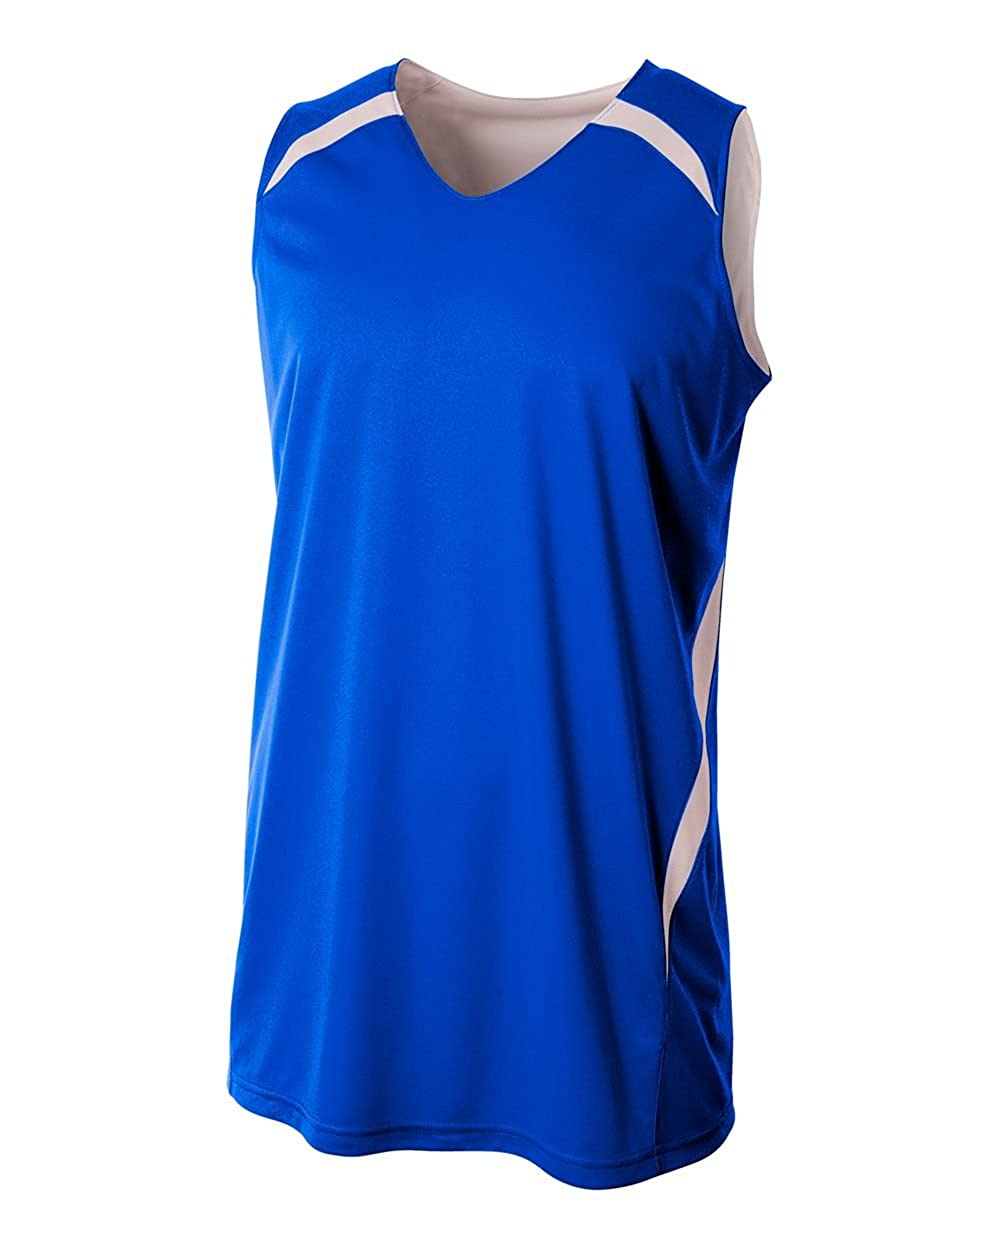 A4 Youth Double Double Reversible Jersey Nb2372